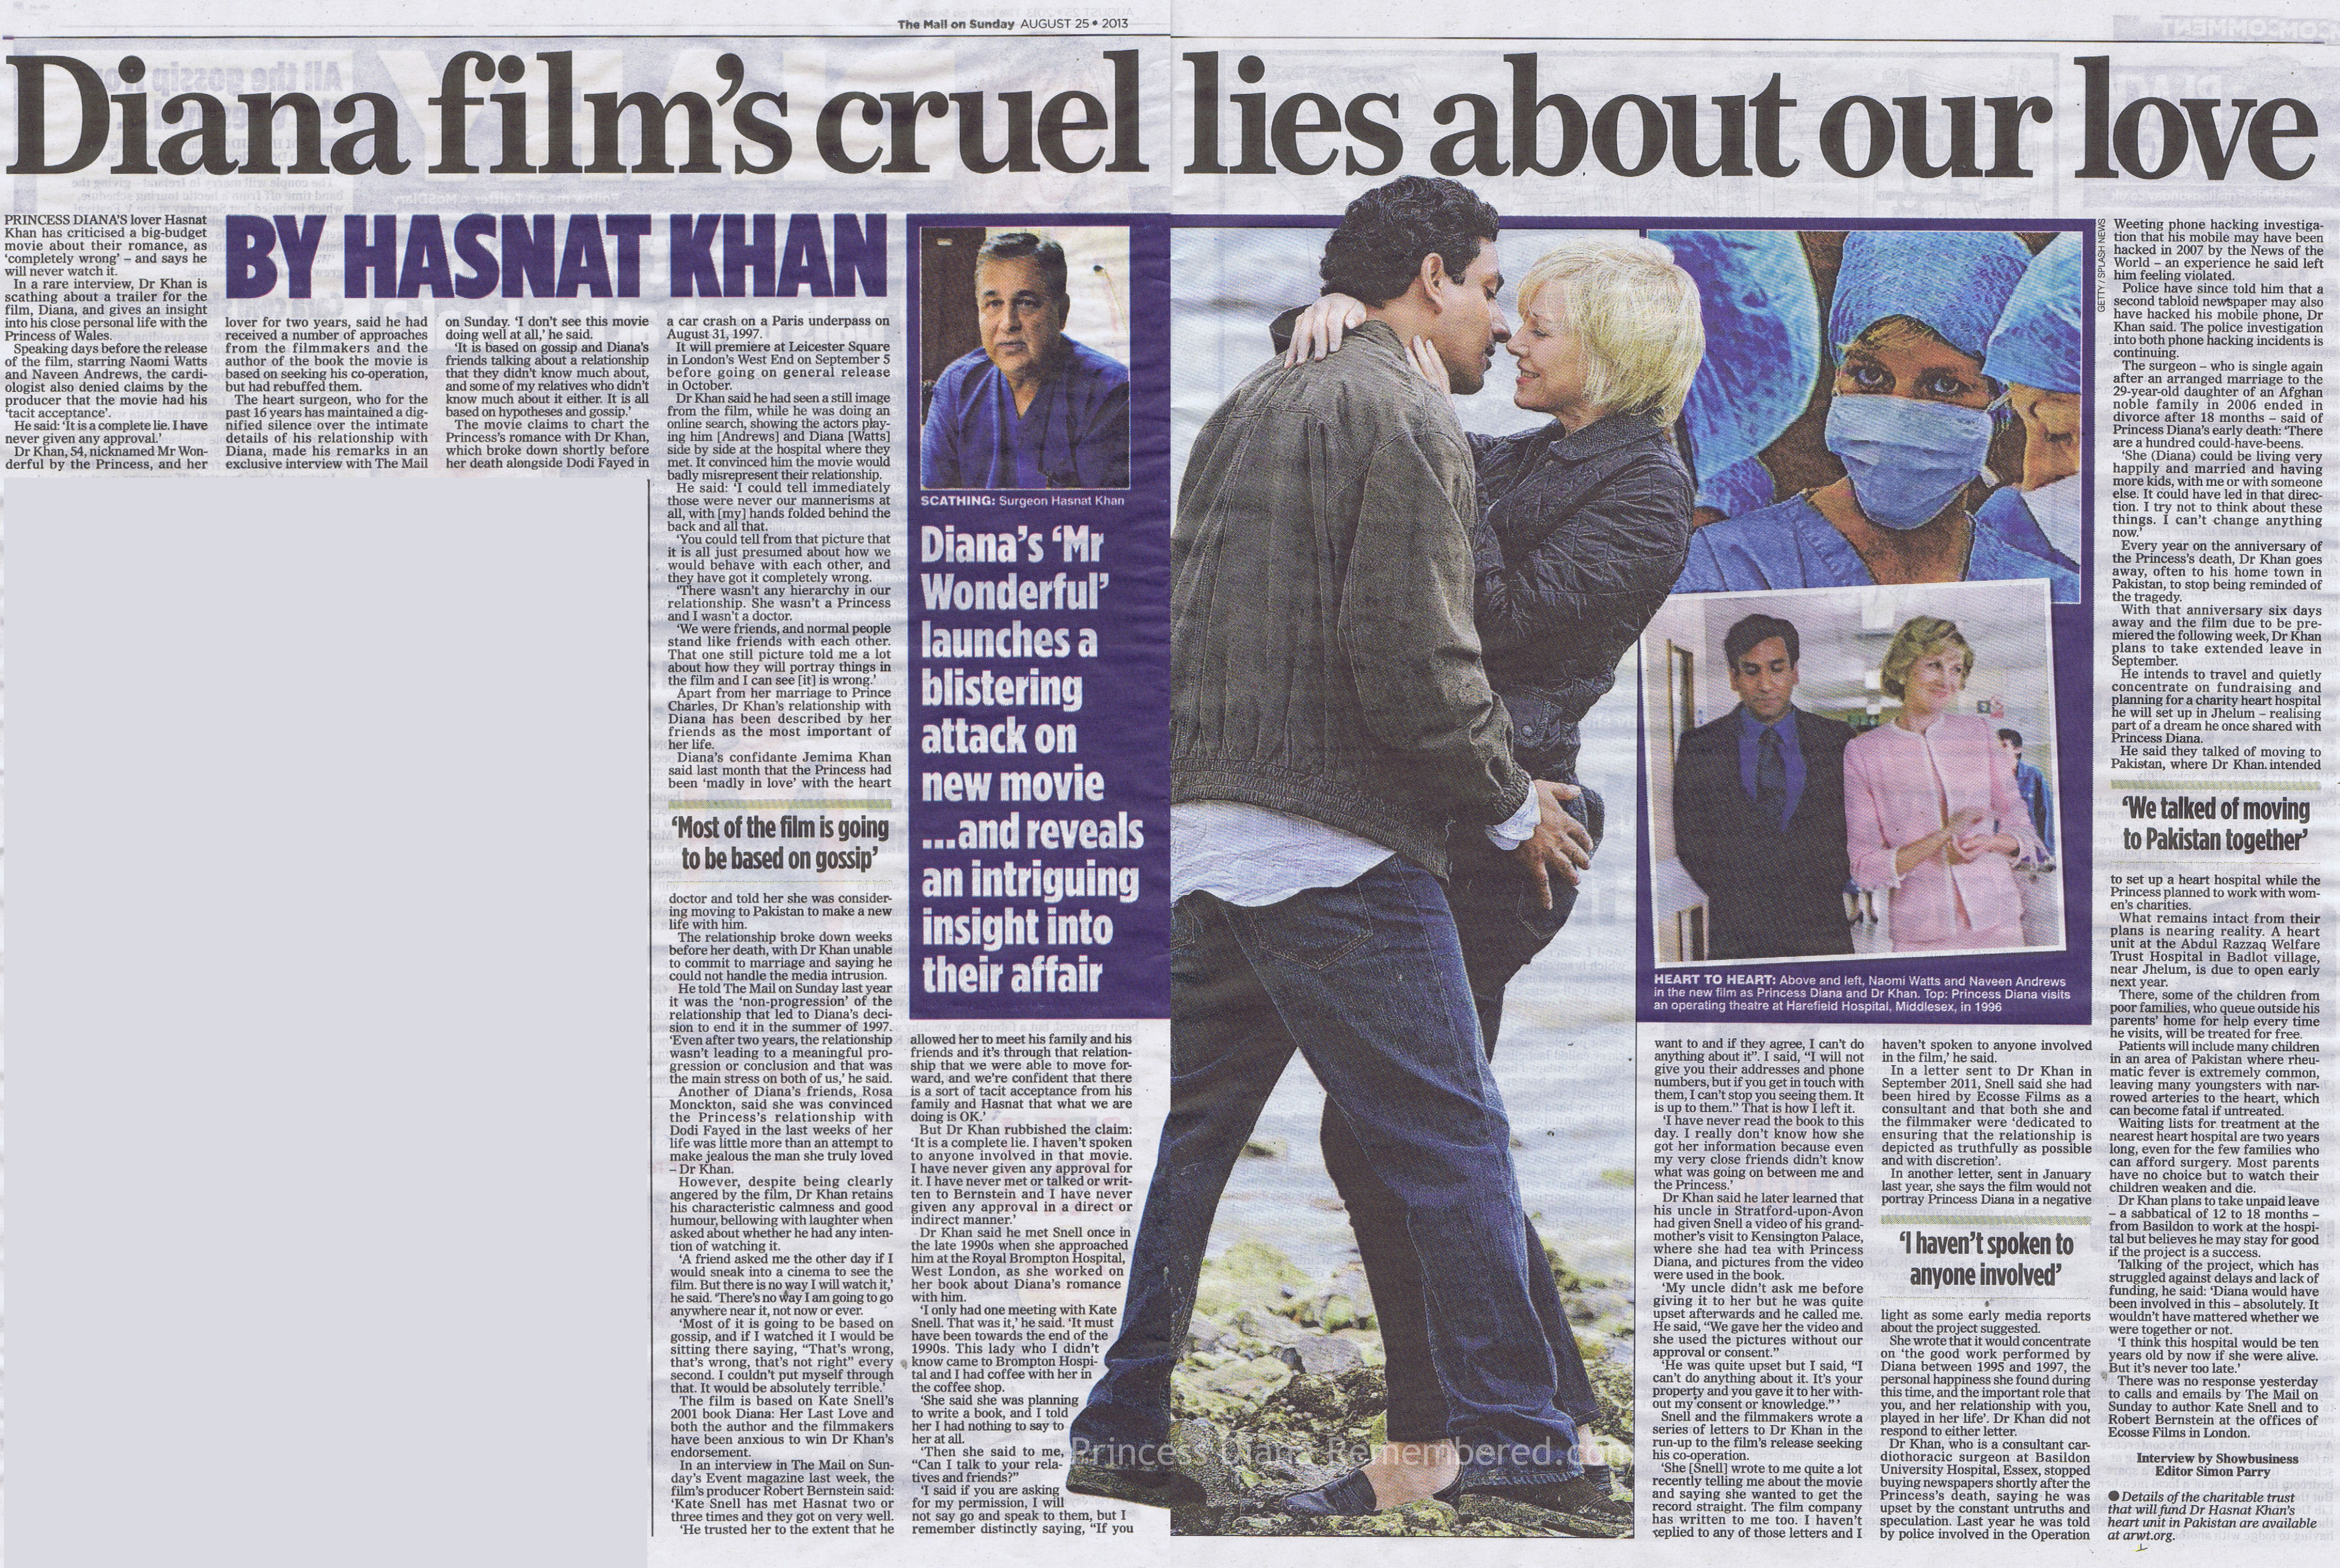 diana and hasnat khan relationship poems